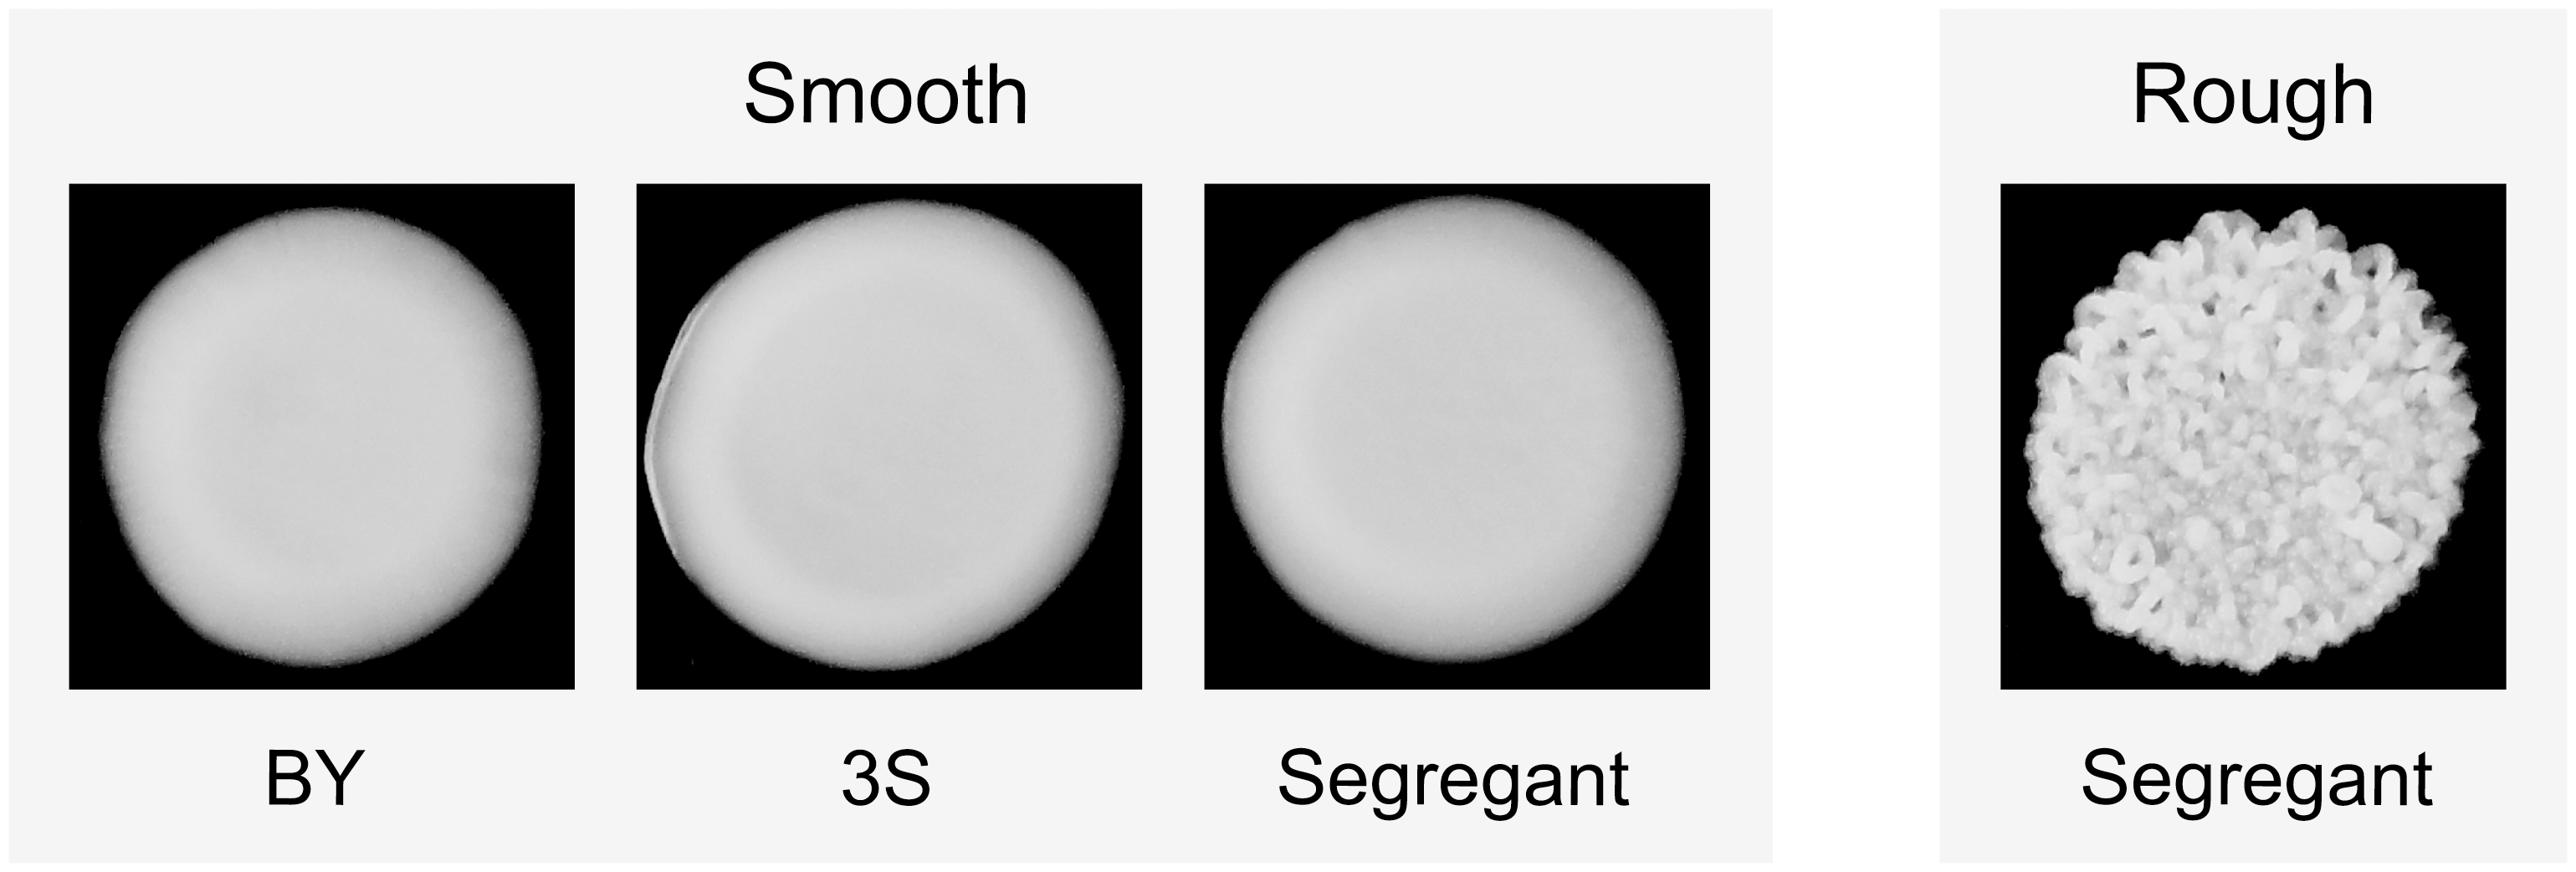 Colony morphology phenotypes that occur in the BYx3S cross in the presence of <i>ira2Δ</i>2933.